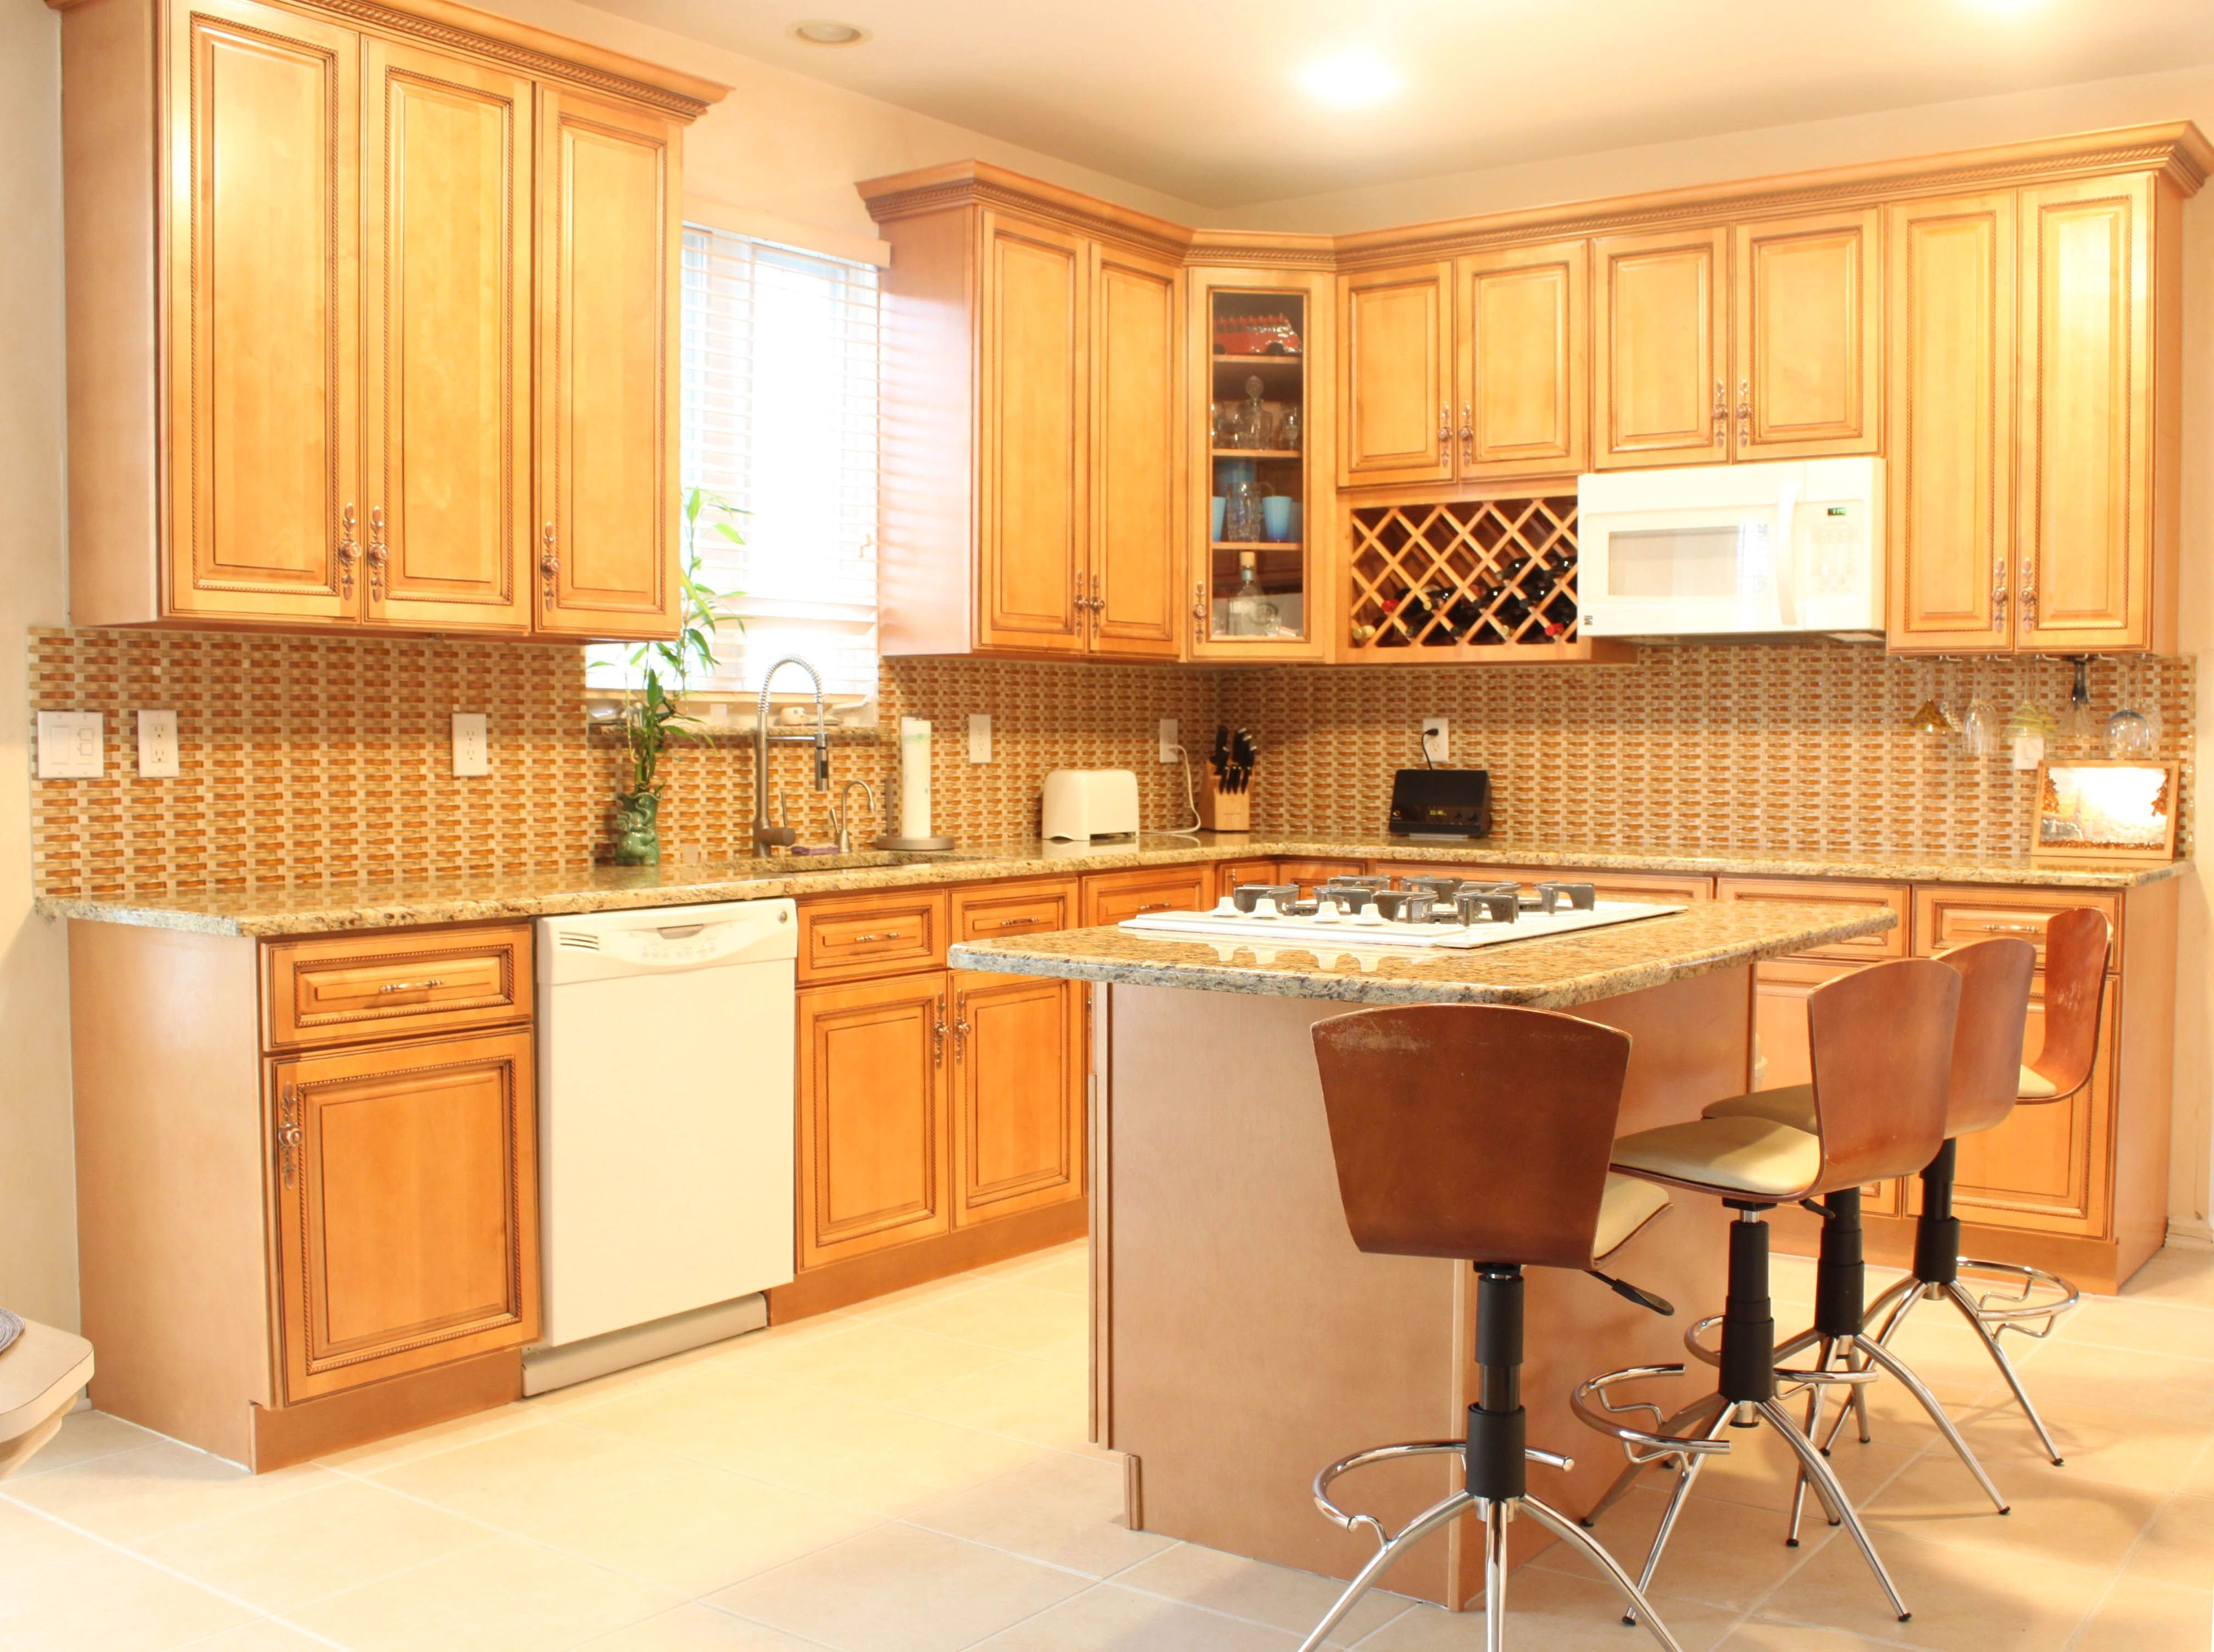 Pre Made Kitchen Cabinets From Premade Kitchen Cabinets Kitchen Cabinets Home Kitchens Kitchen